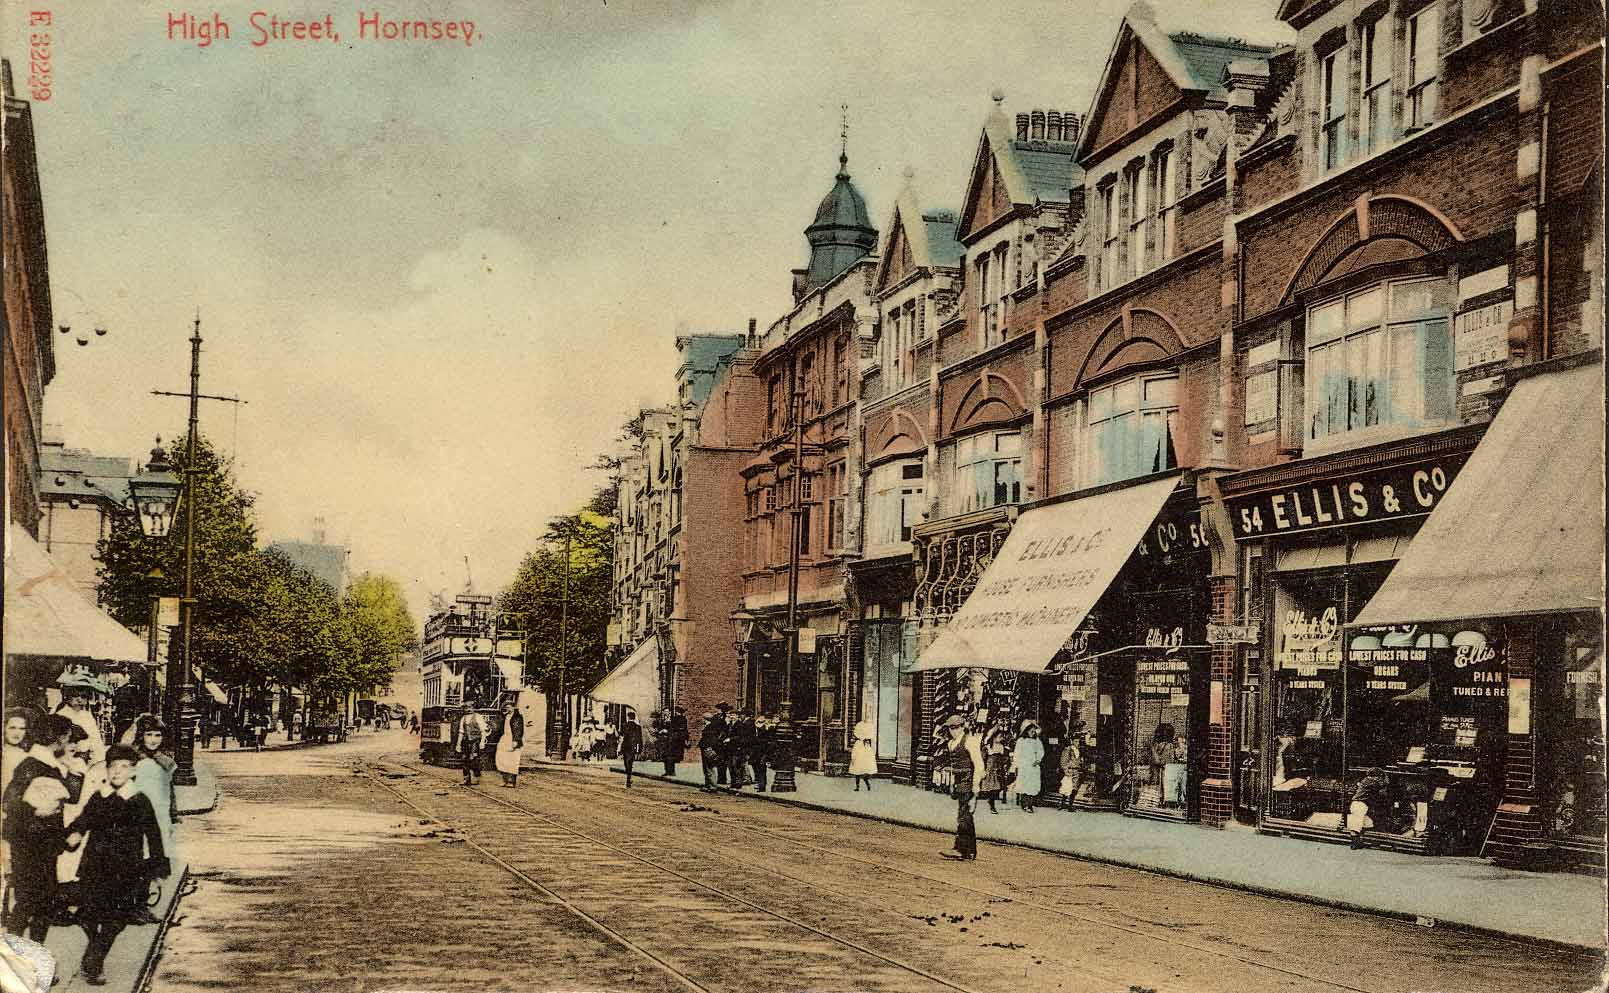 High Street, Hornsey